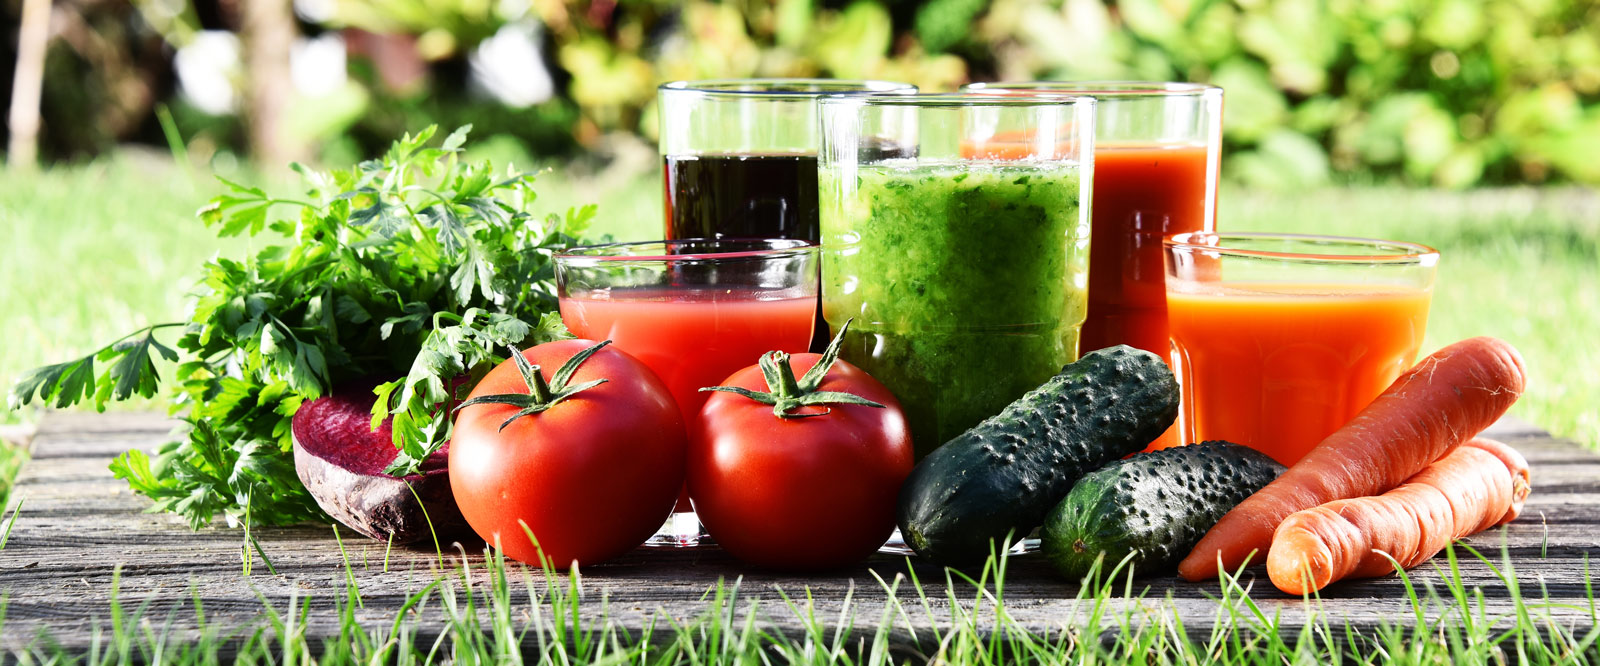 vegetables and smoothies